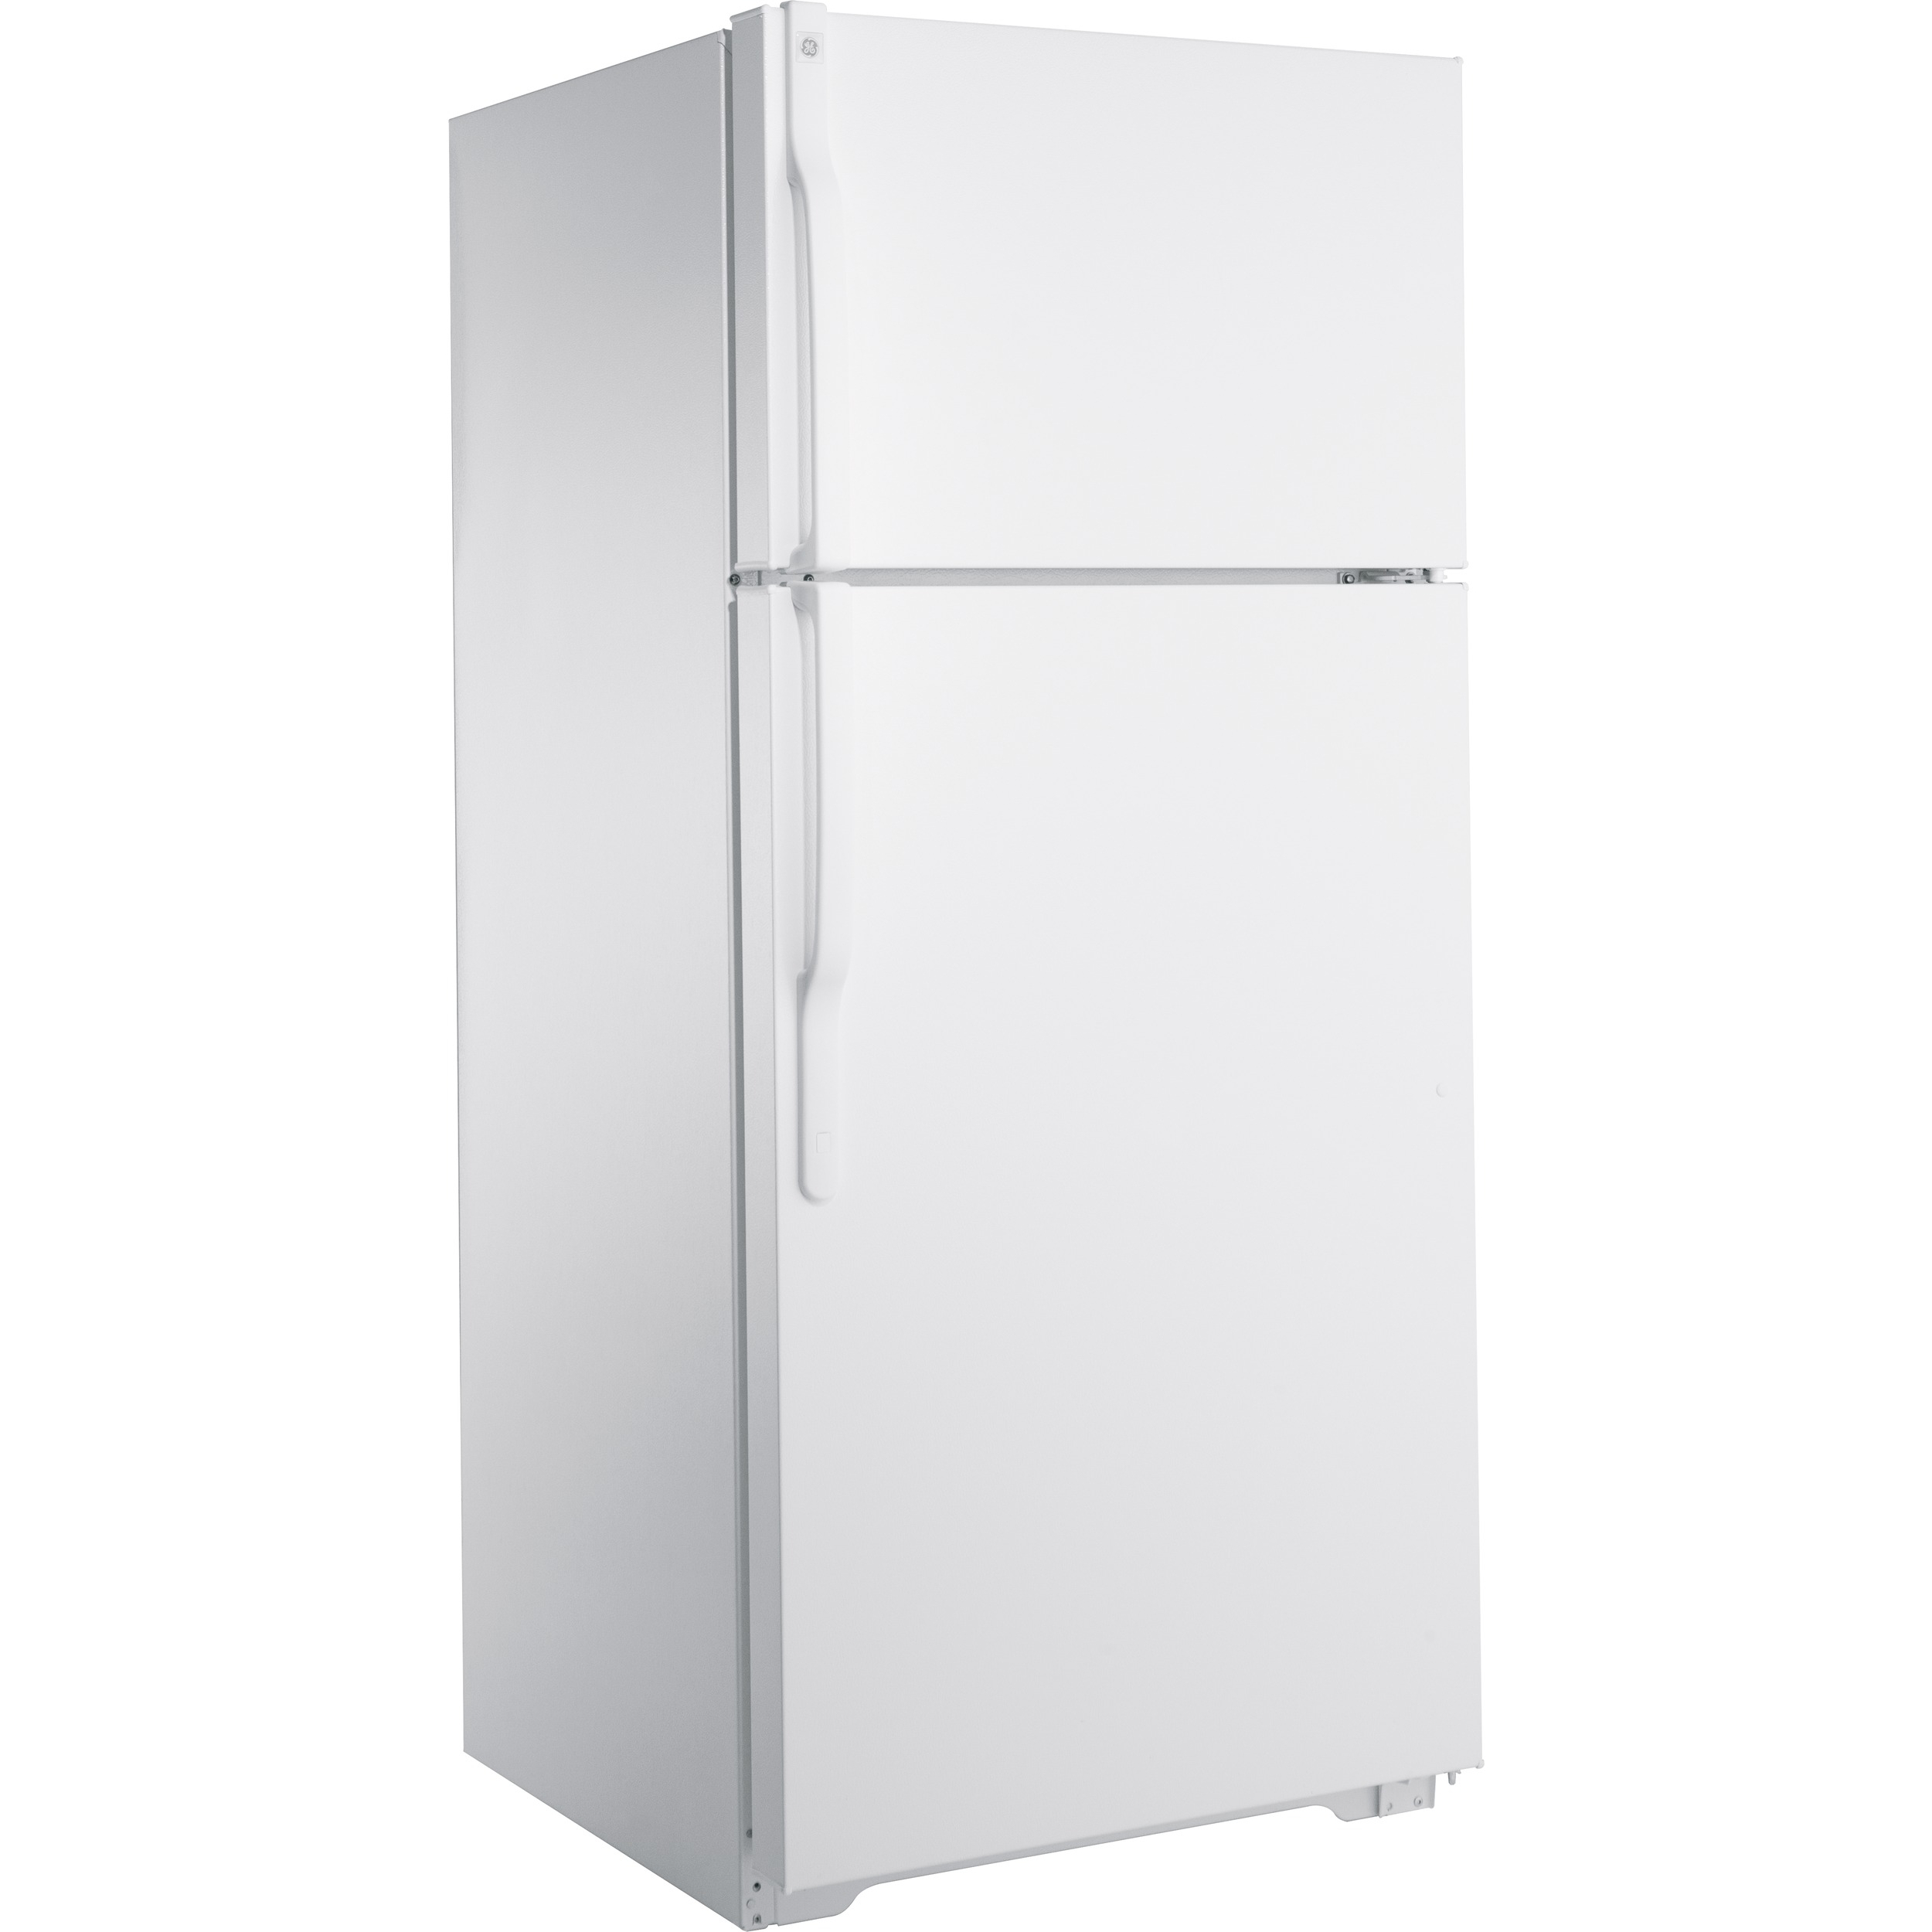 GE 16.6 cu. ft. Top-Freezer Refrigerator - White